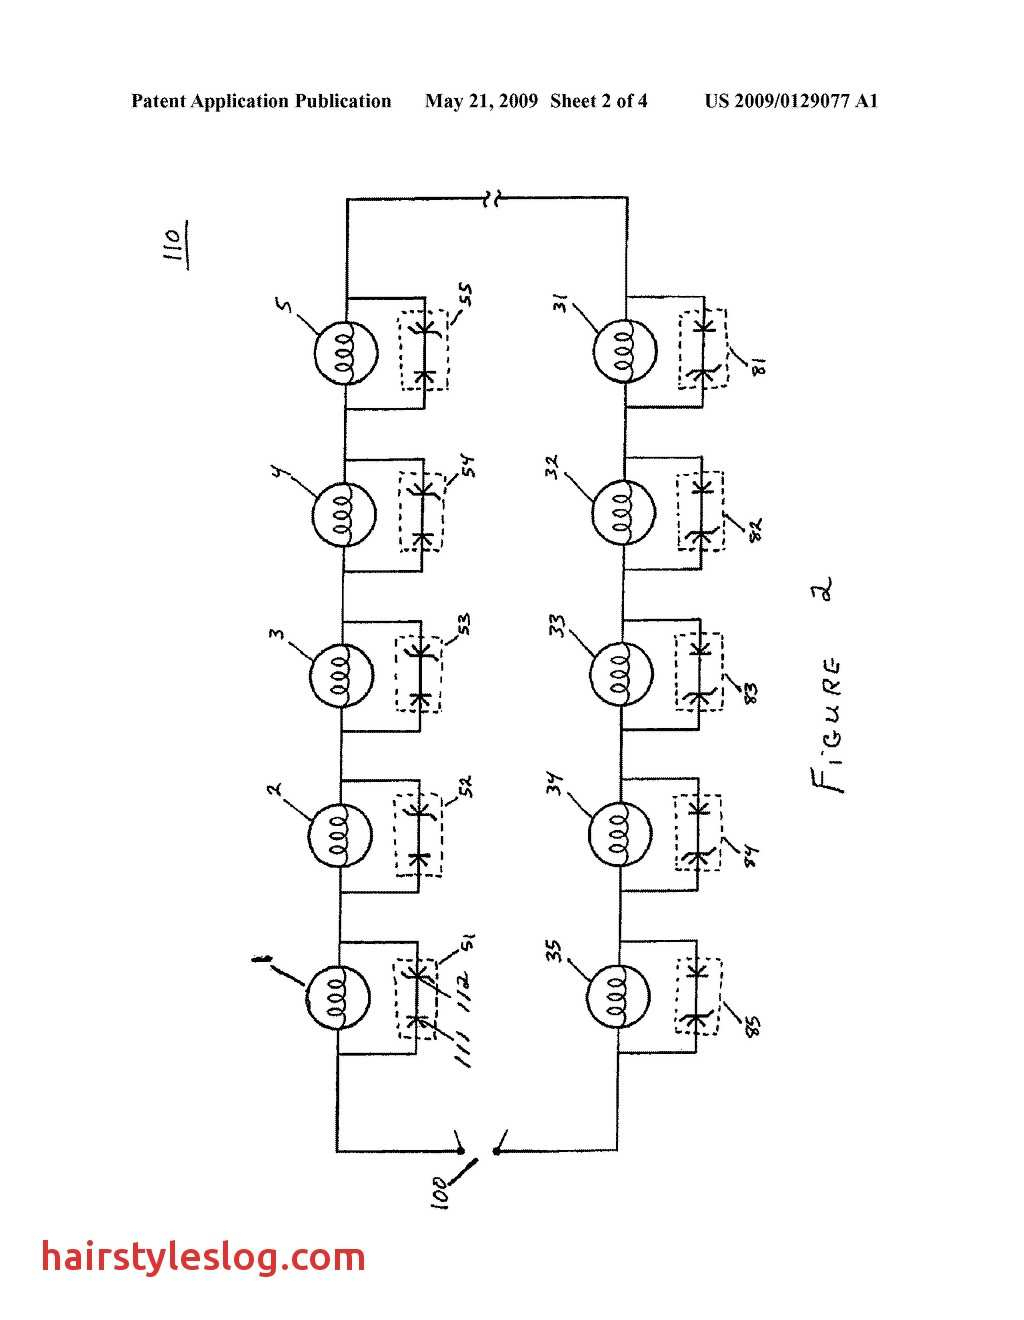 Wiring 3 Wire Christmas Lights - All Wiring Diagram - Christmas Light Wiring Diagram 3 Wire